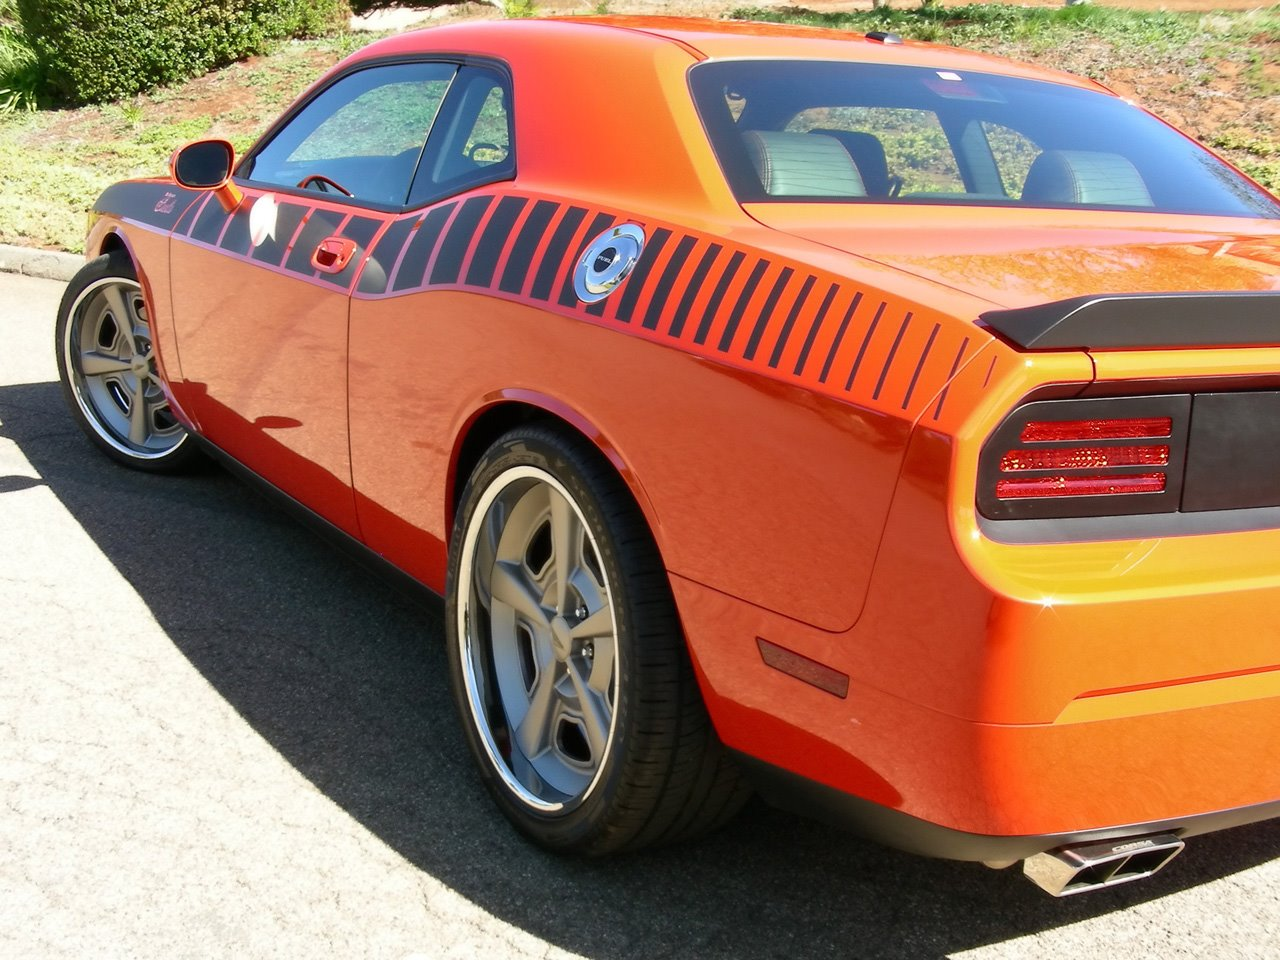 Dodge Challenger Conversion >> Barracuda package for Challenger by Mr Norm - Dodge Challenger Forum: Challenger & SRT8 Forums